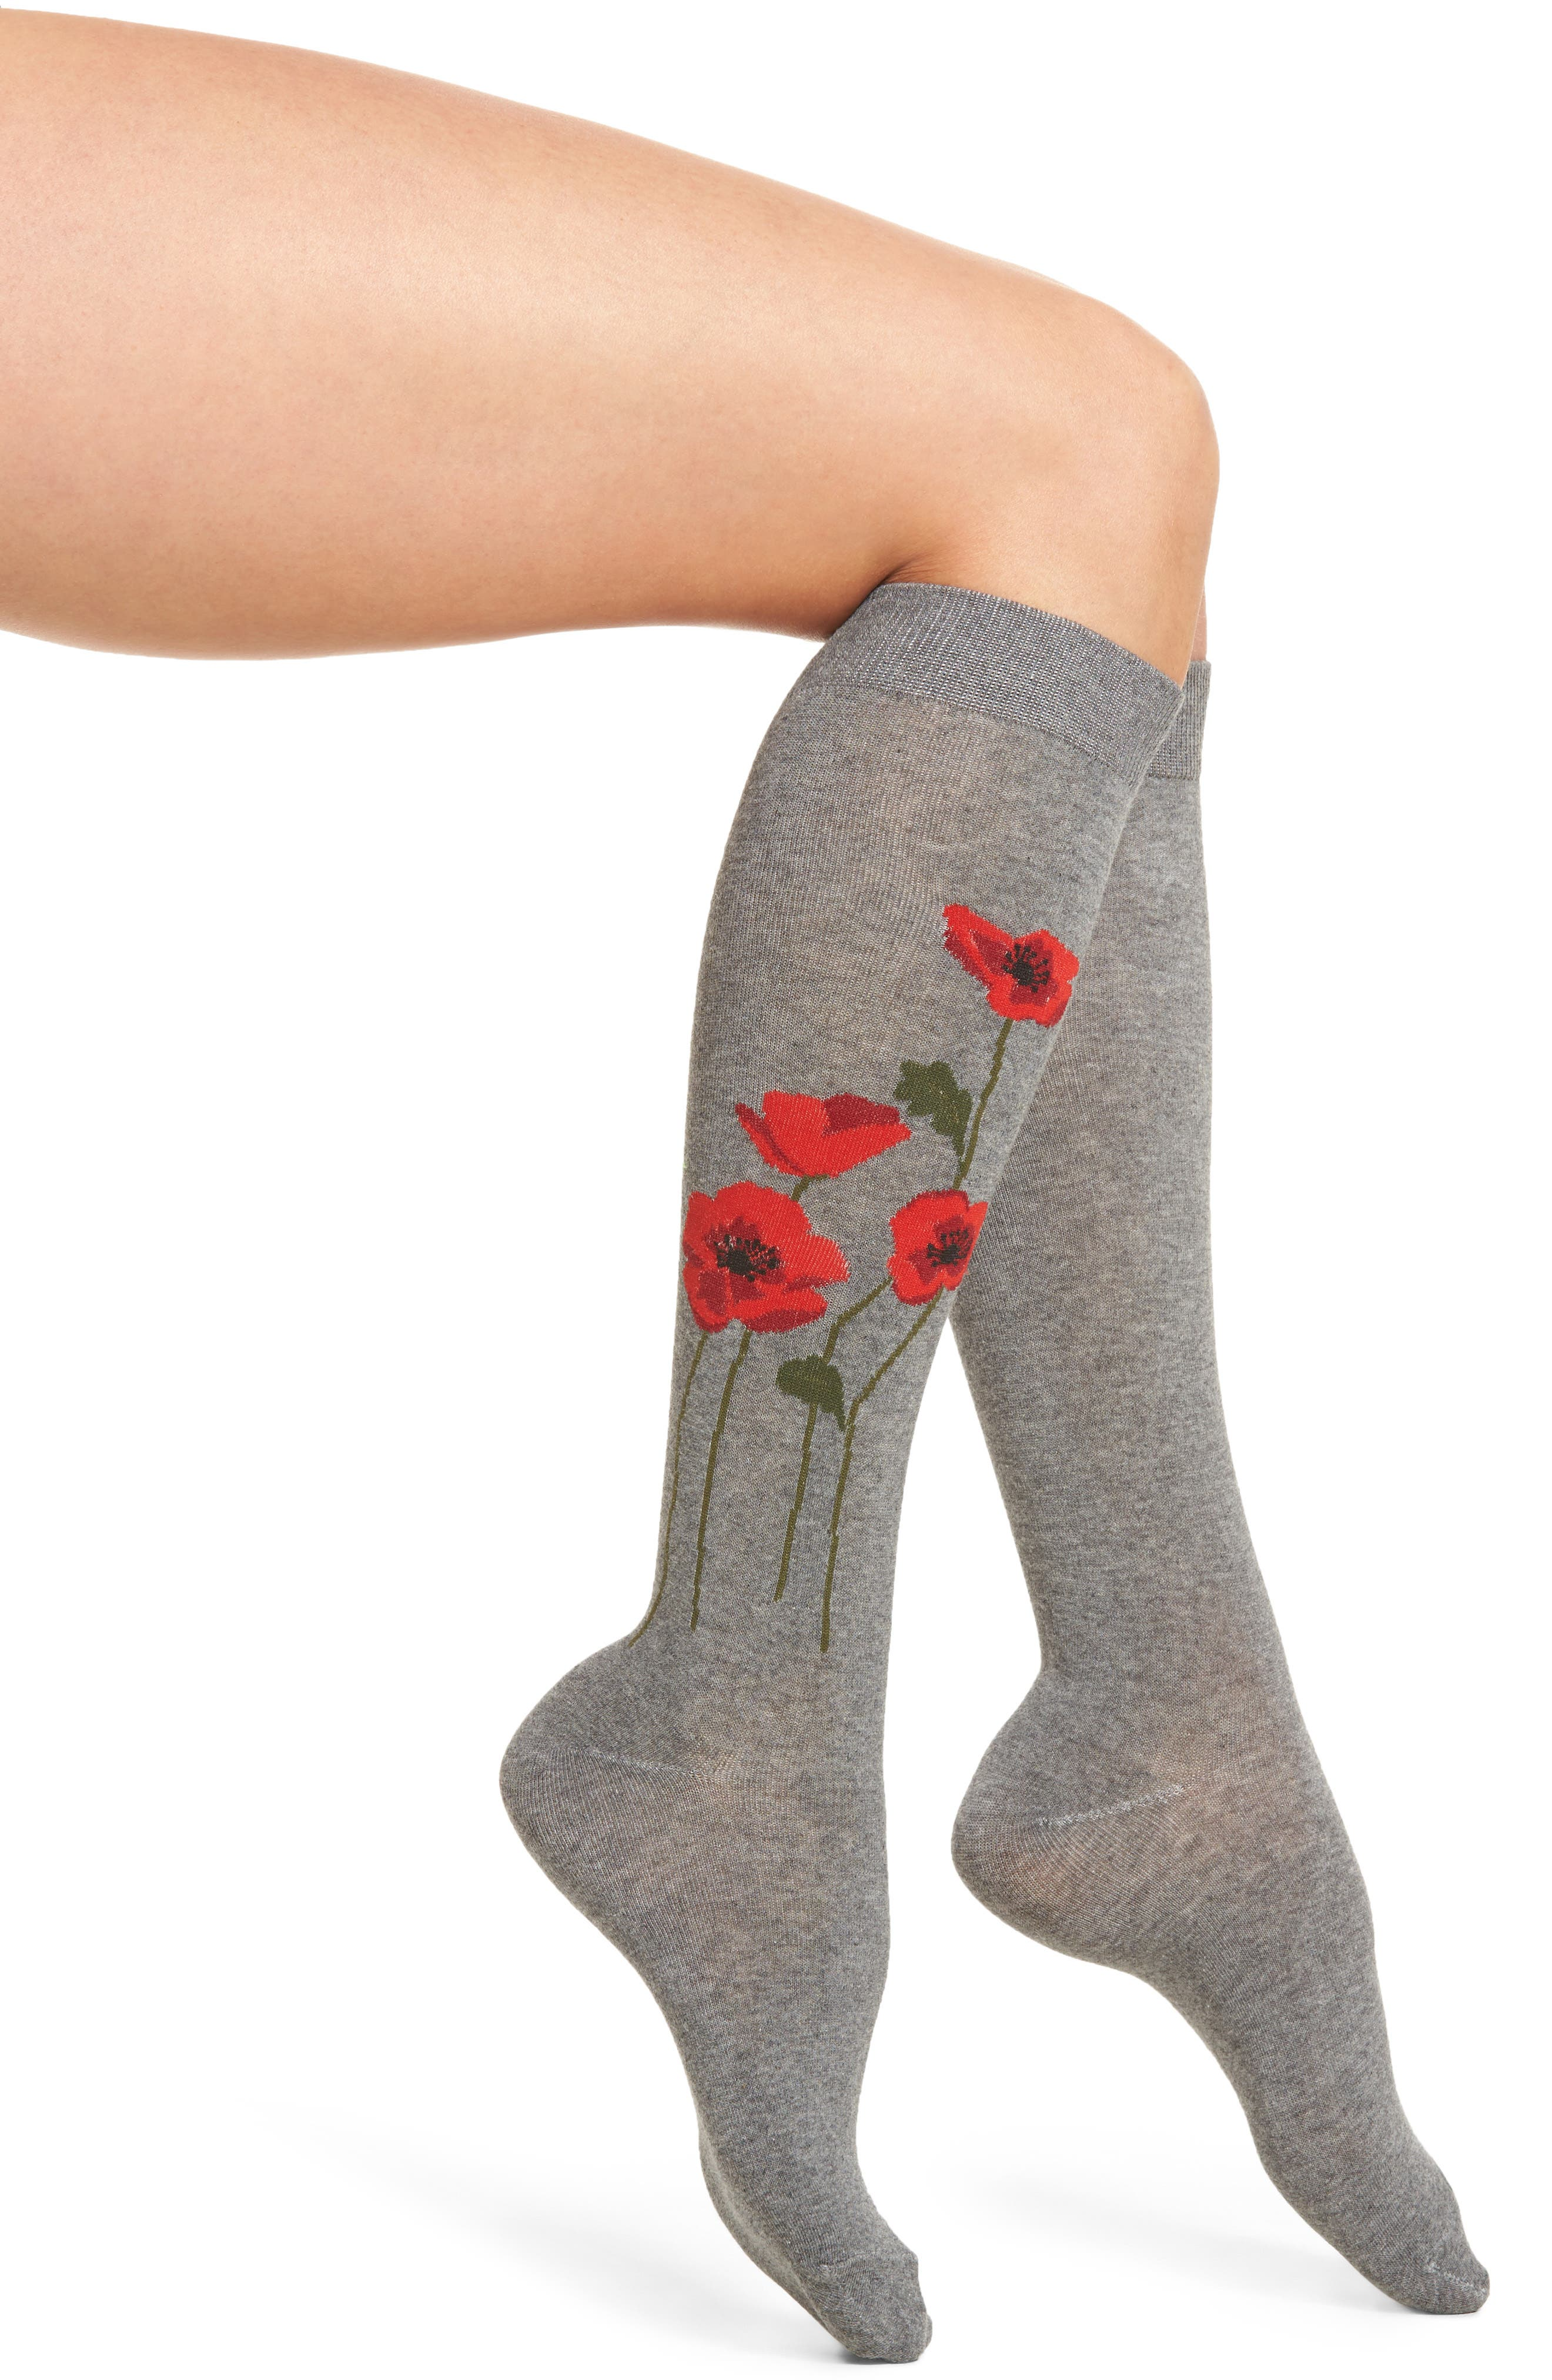 kate spade new york falling poppy knee high socks (2 for $20)